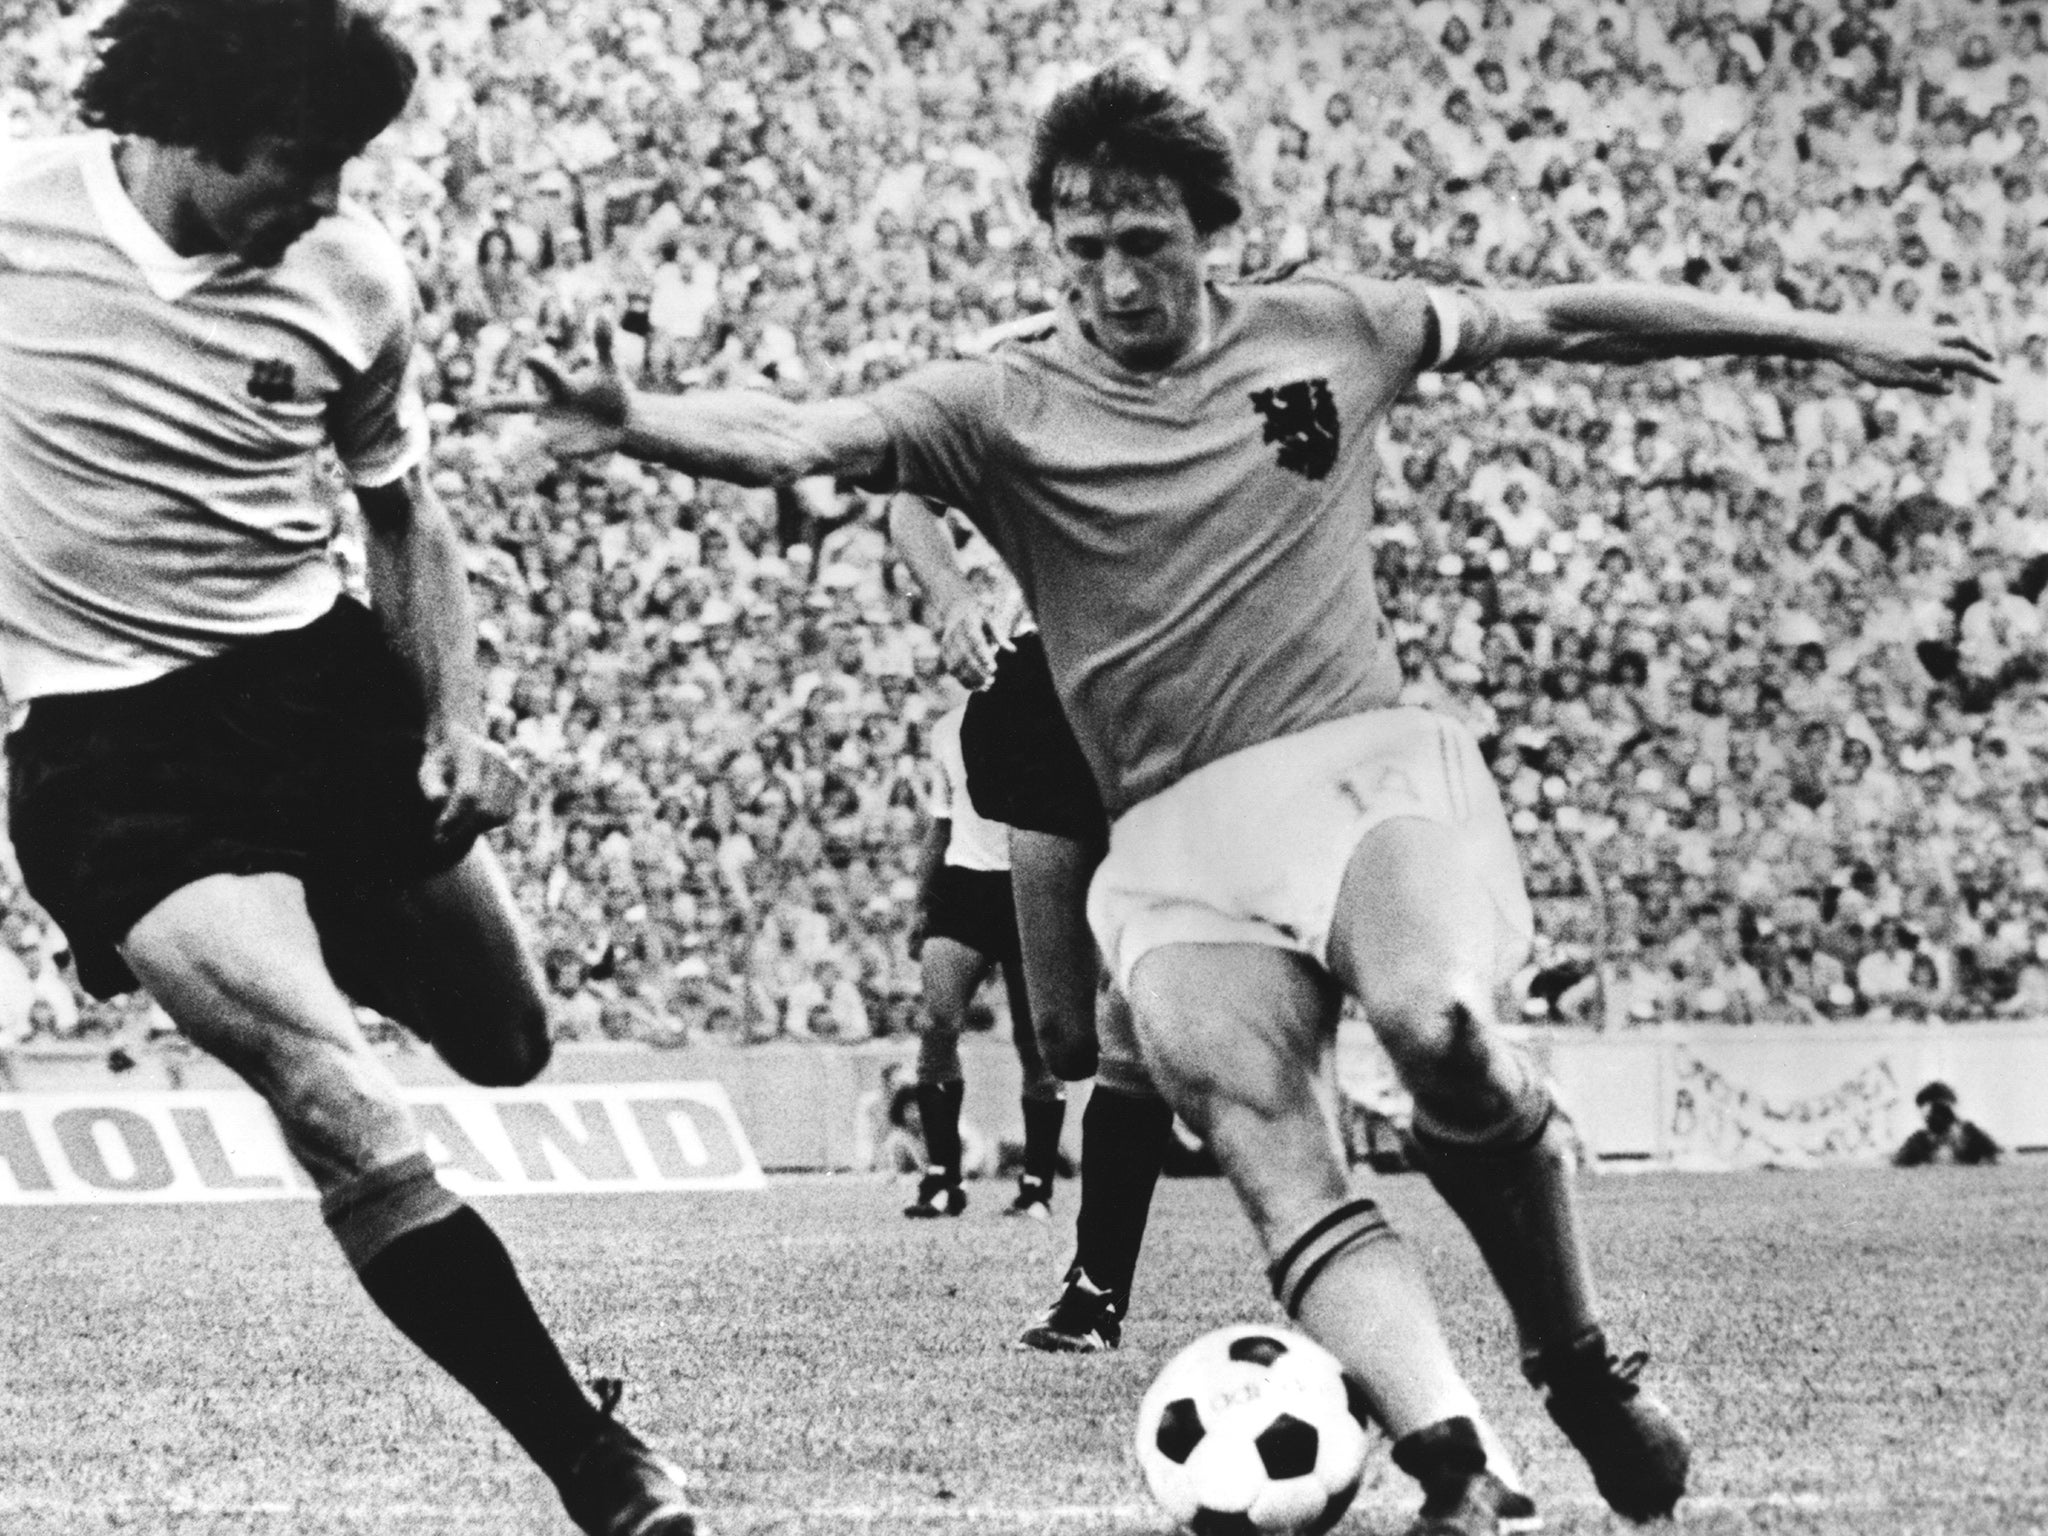 Johan Cruyff dead: 14 things you didn't know about the Dutch